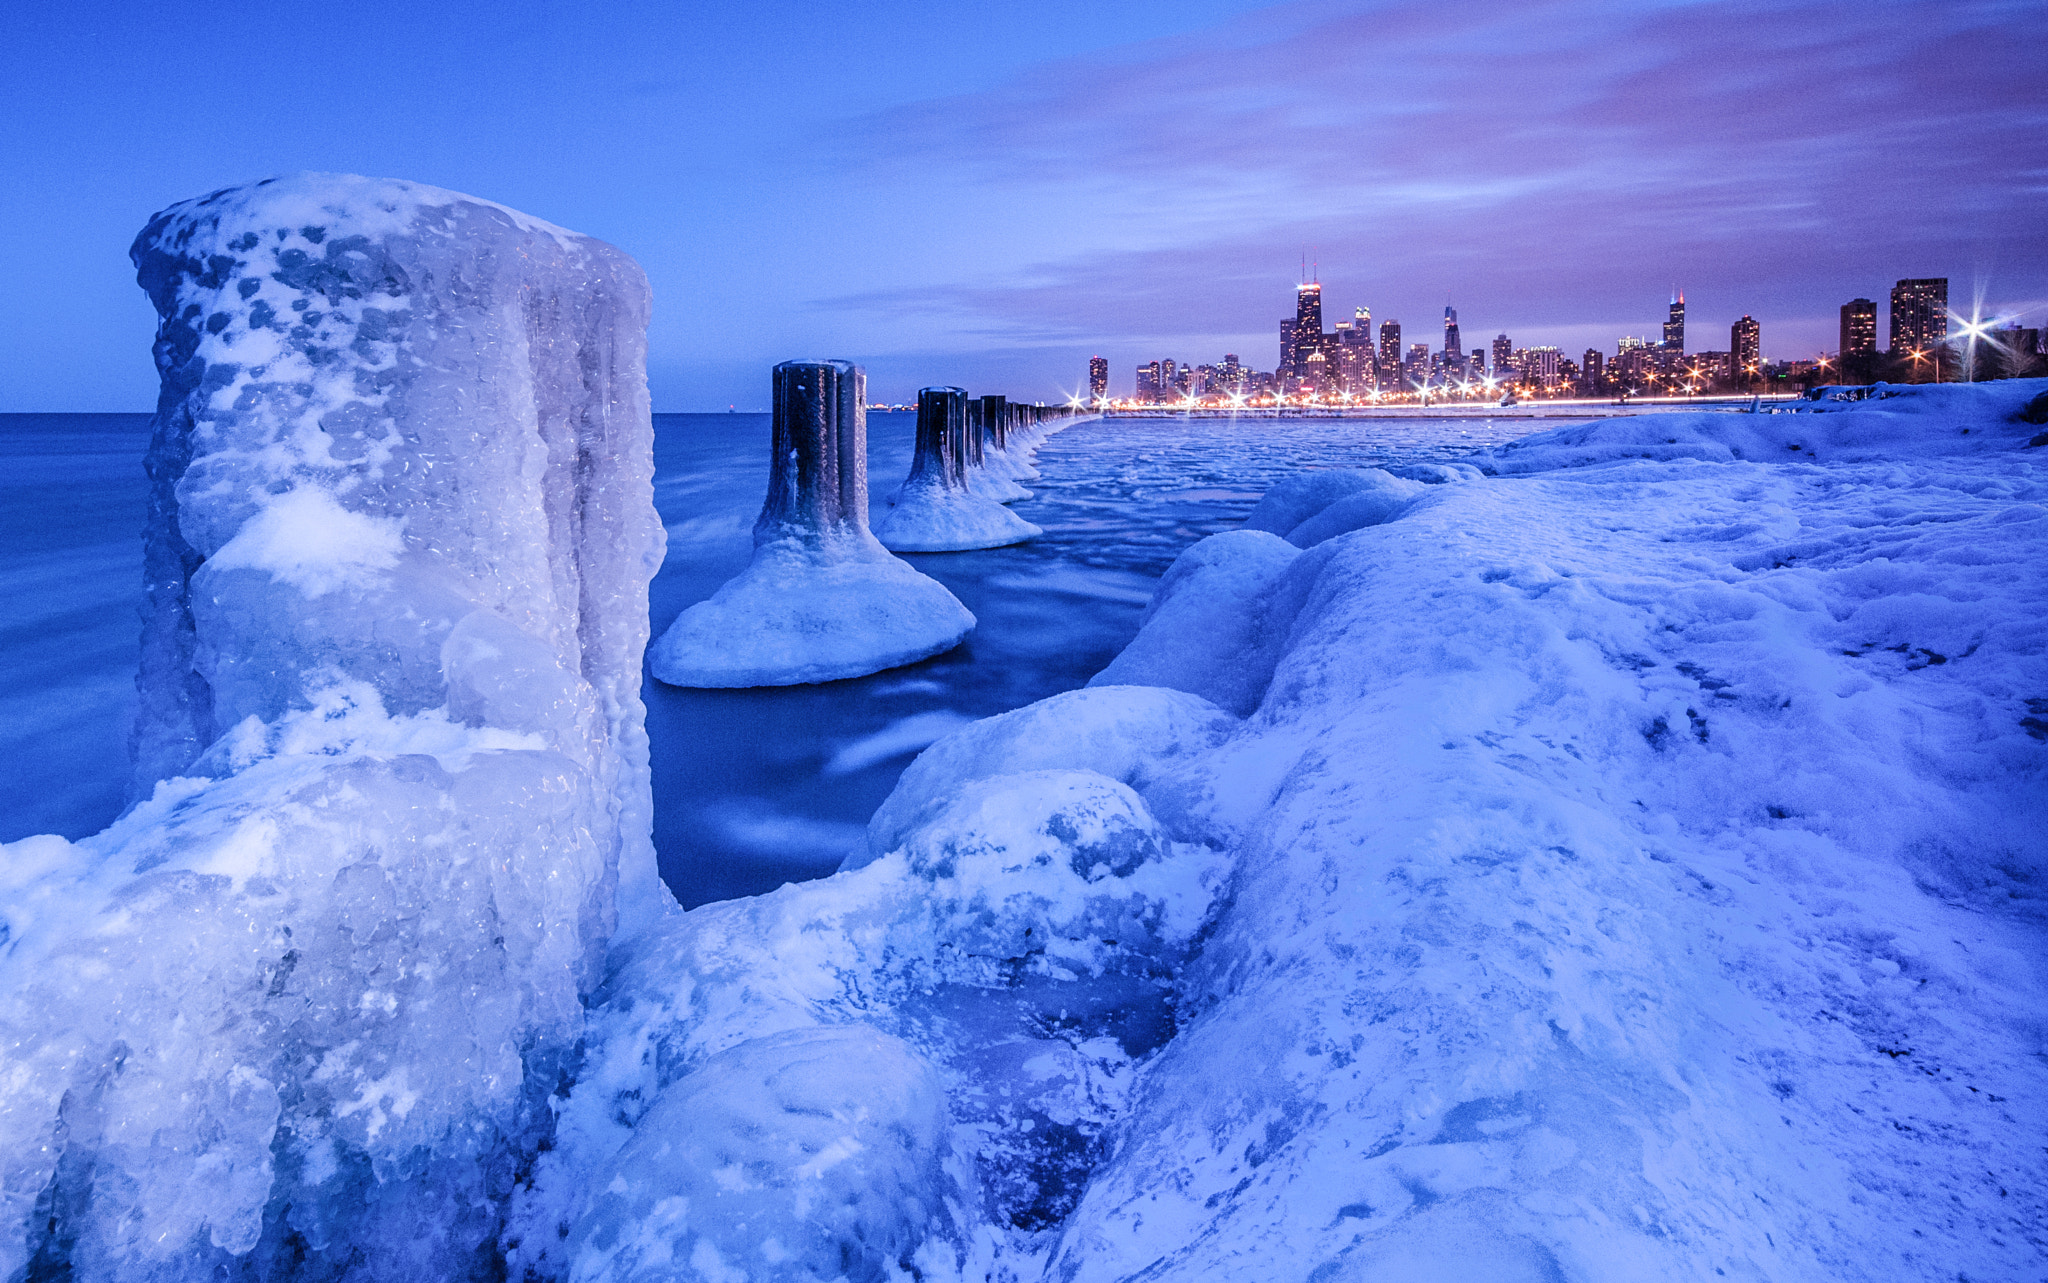 Photograph COLDTOWN CHICAGO by WilsonAxpe /  Scott Wilson on 500px